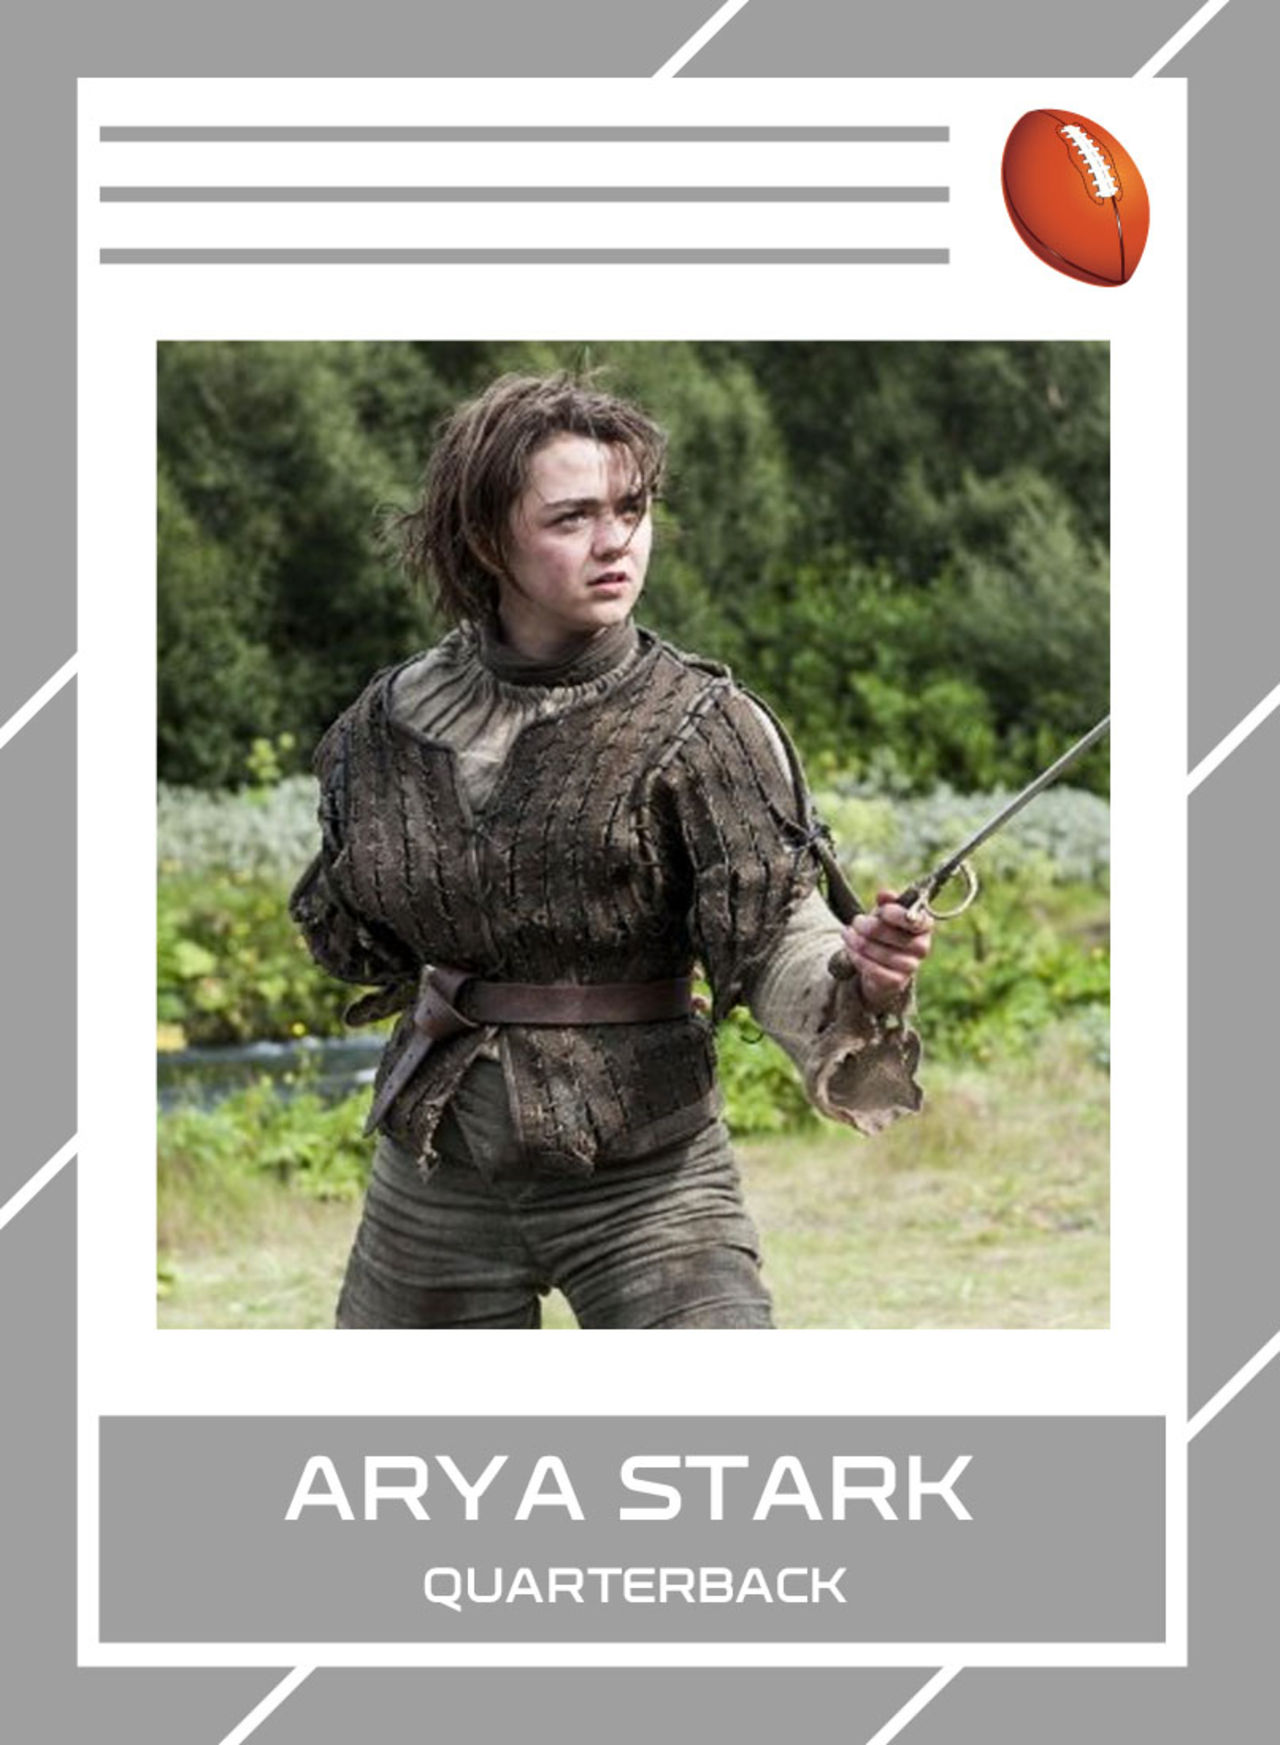 Critics will point to her lack of ideal size to play at the highest level, but Arya is from a family of field generals. Both her royal father Ned's and her royal brother Robb's busts - at least I think those are busts - are already in the Hall of Fame. She displays a chameleon-like ability to alter her style in order to win the situation, unparalleled footwork (thanks to her tutorship under star-making guru Syrio Forel), and an unflinching willingness to go for her opponent's heart.